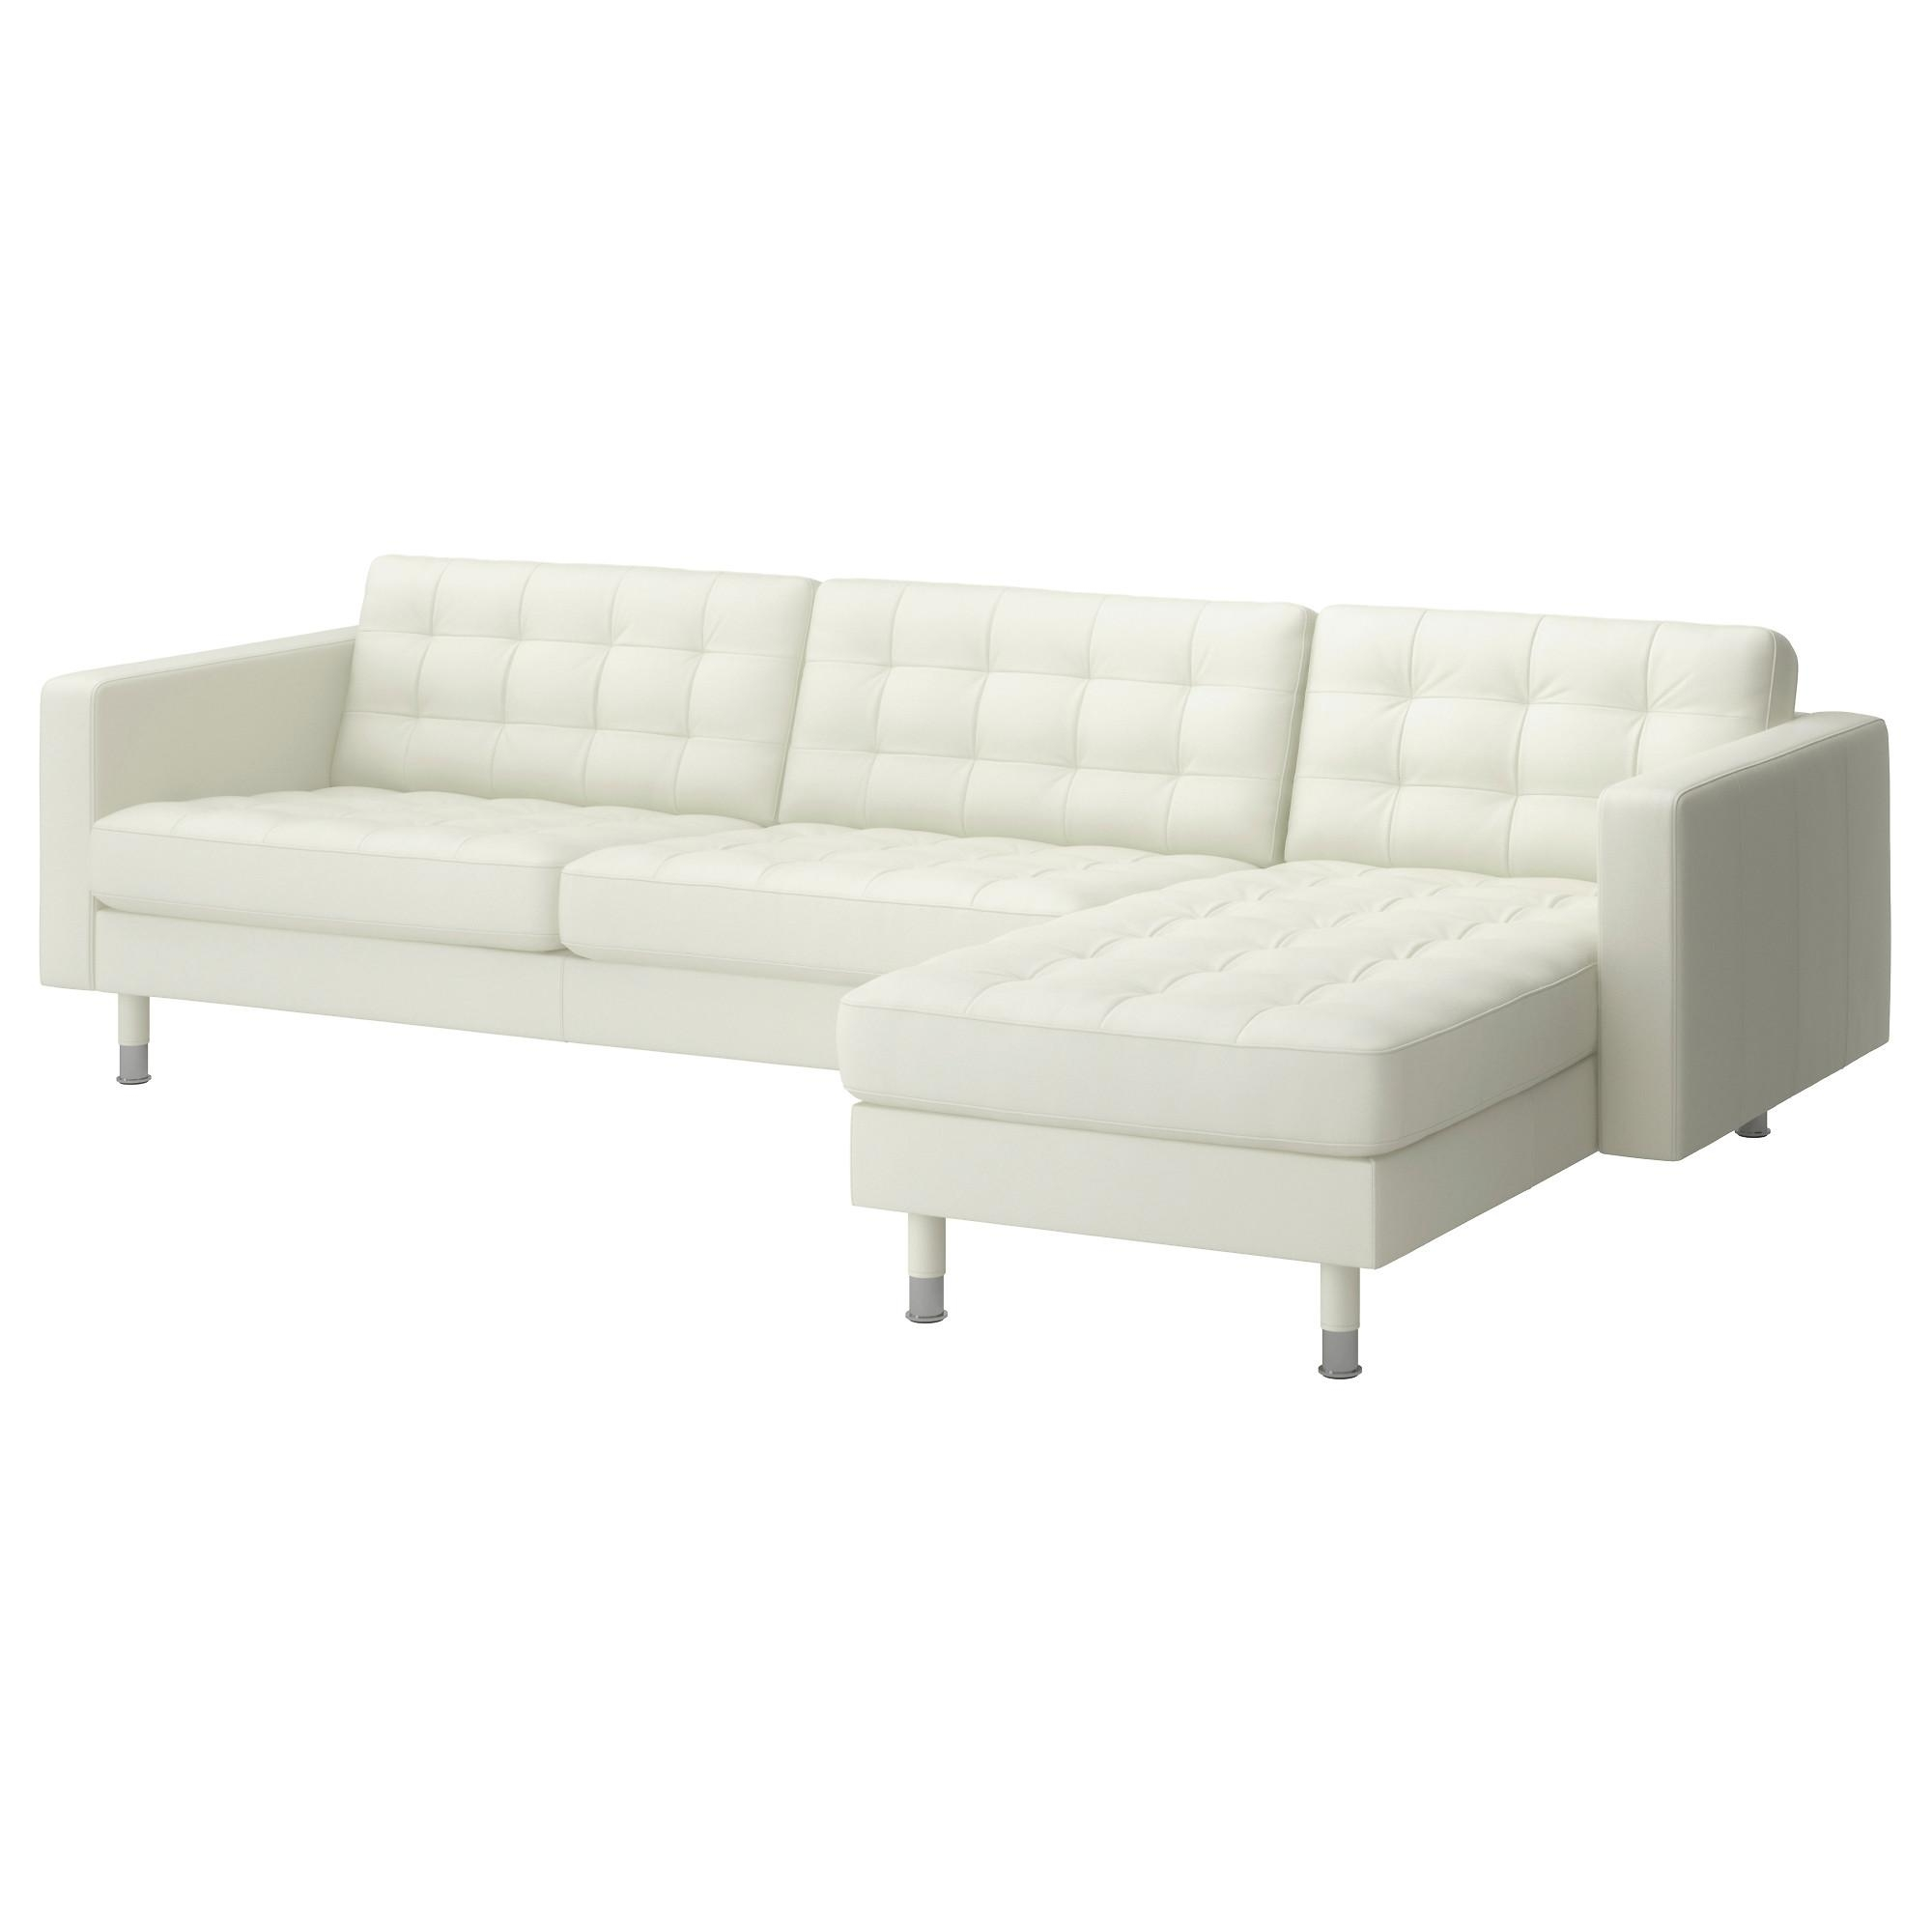 Leather & Faux Leather Couches, Chairs & Ottomans – Ikea Intended For White Leather Sofas (Image 4 of 20)